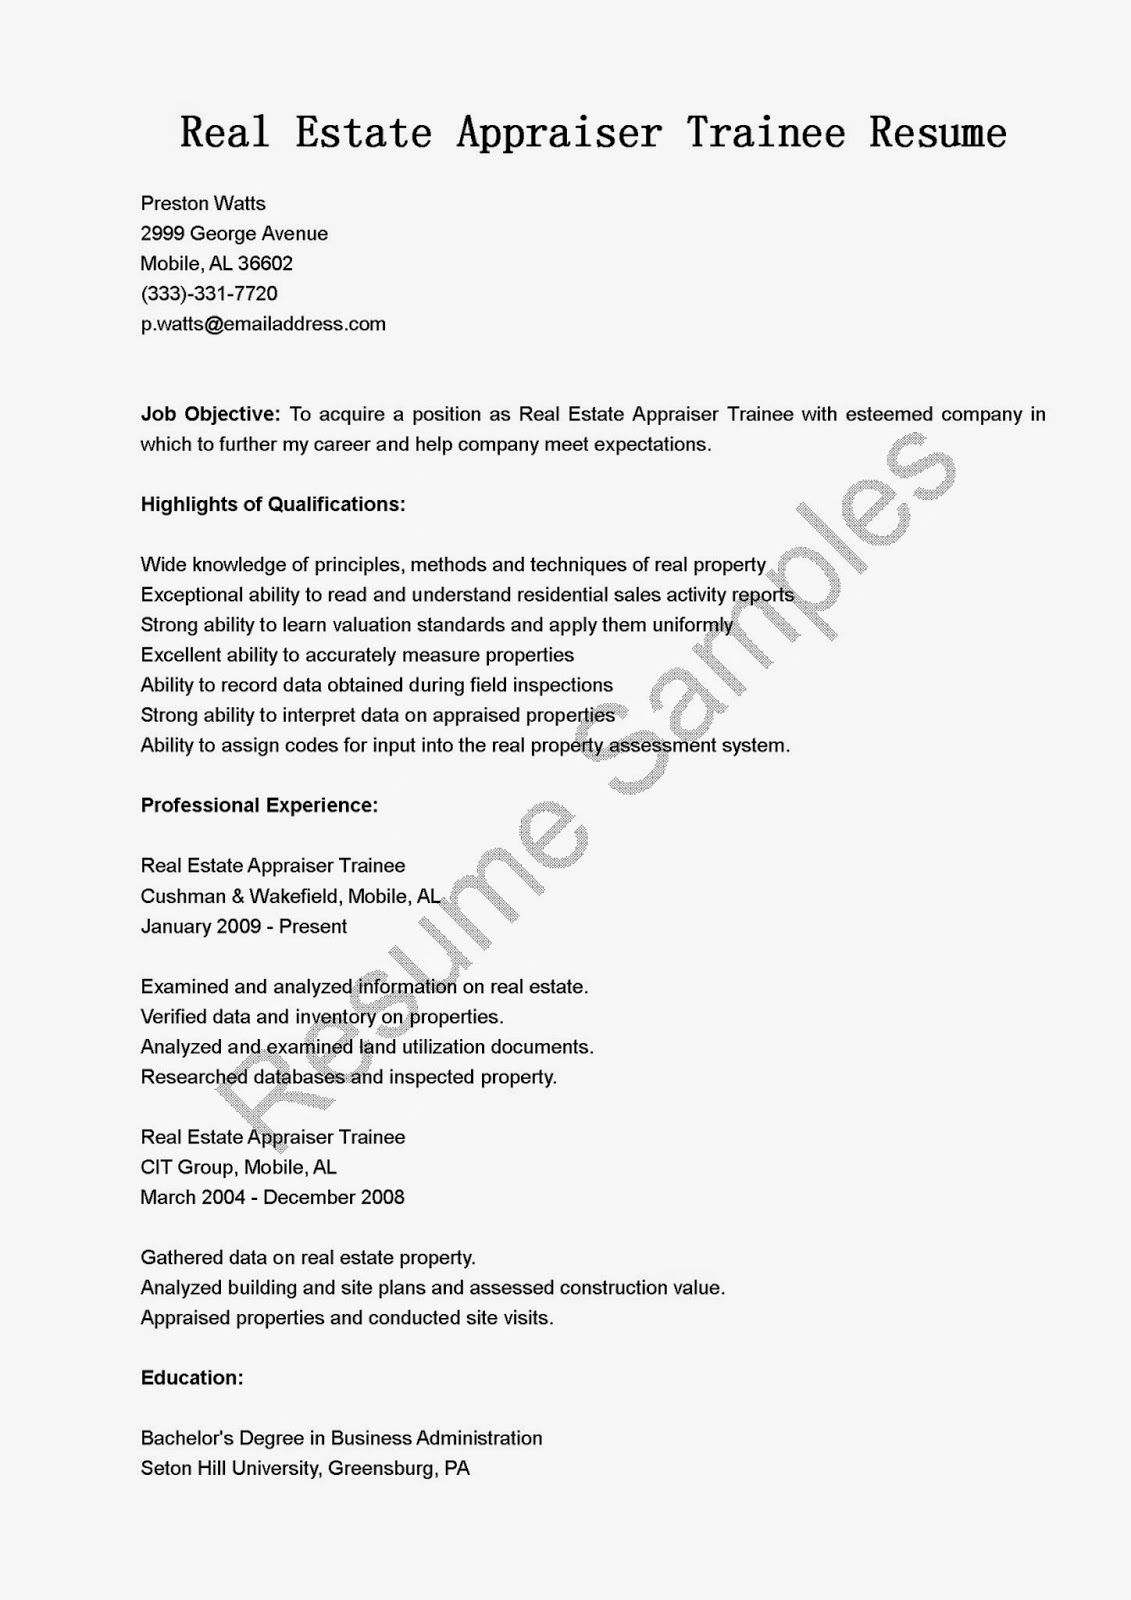 Property Management Resume Real Estate Appraiser Trainee Resume Sample Resume Samples